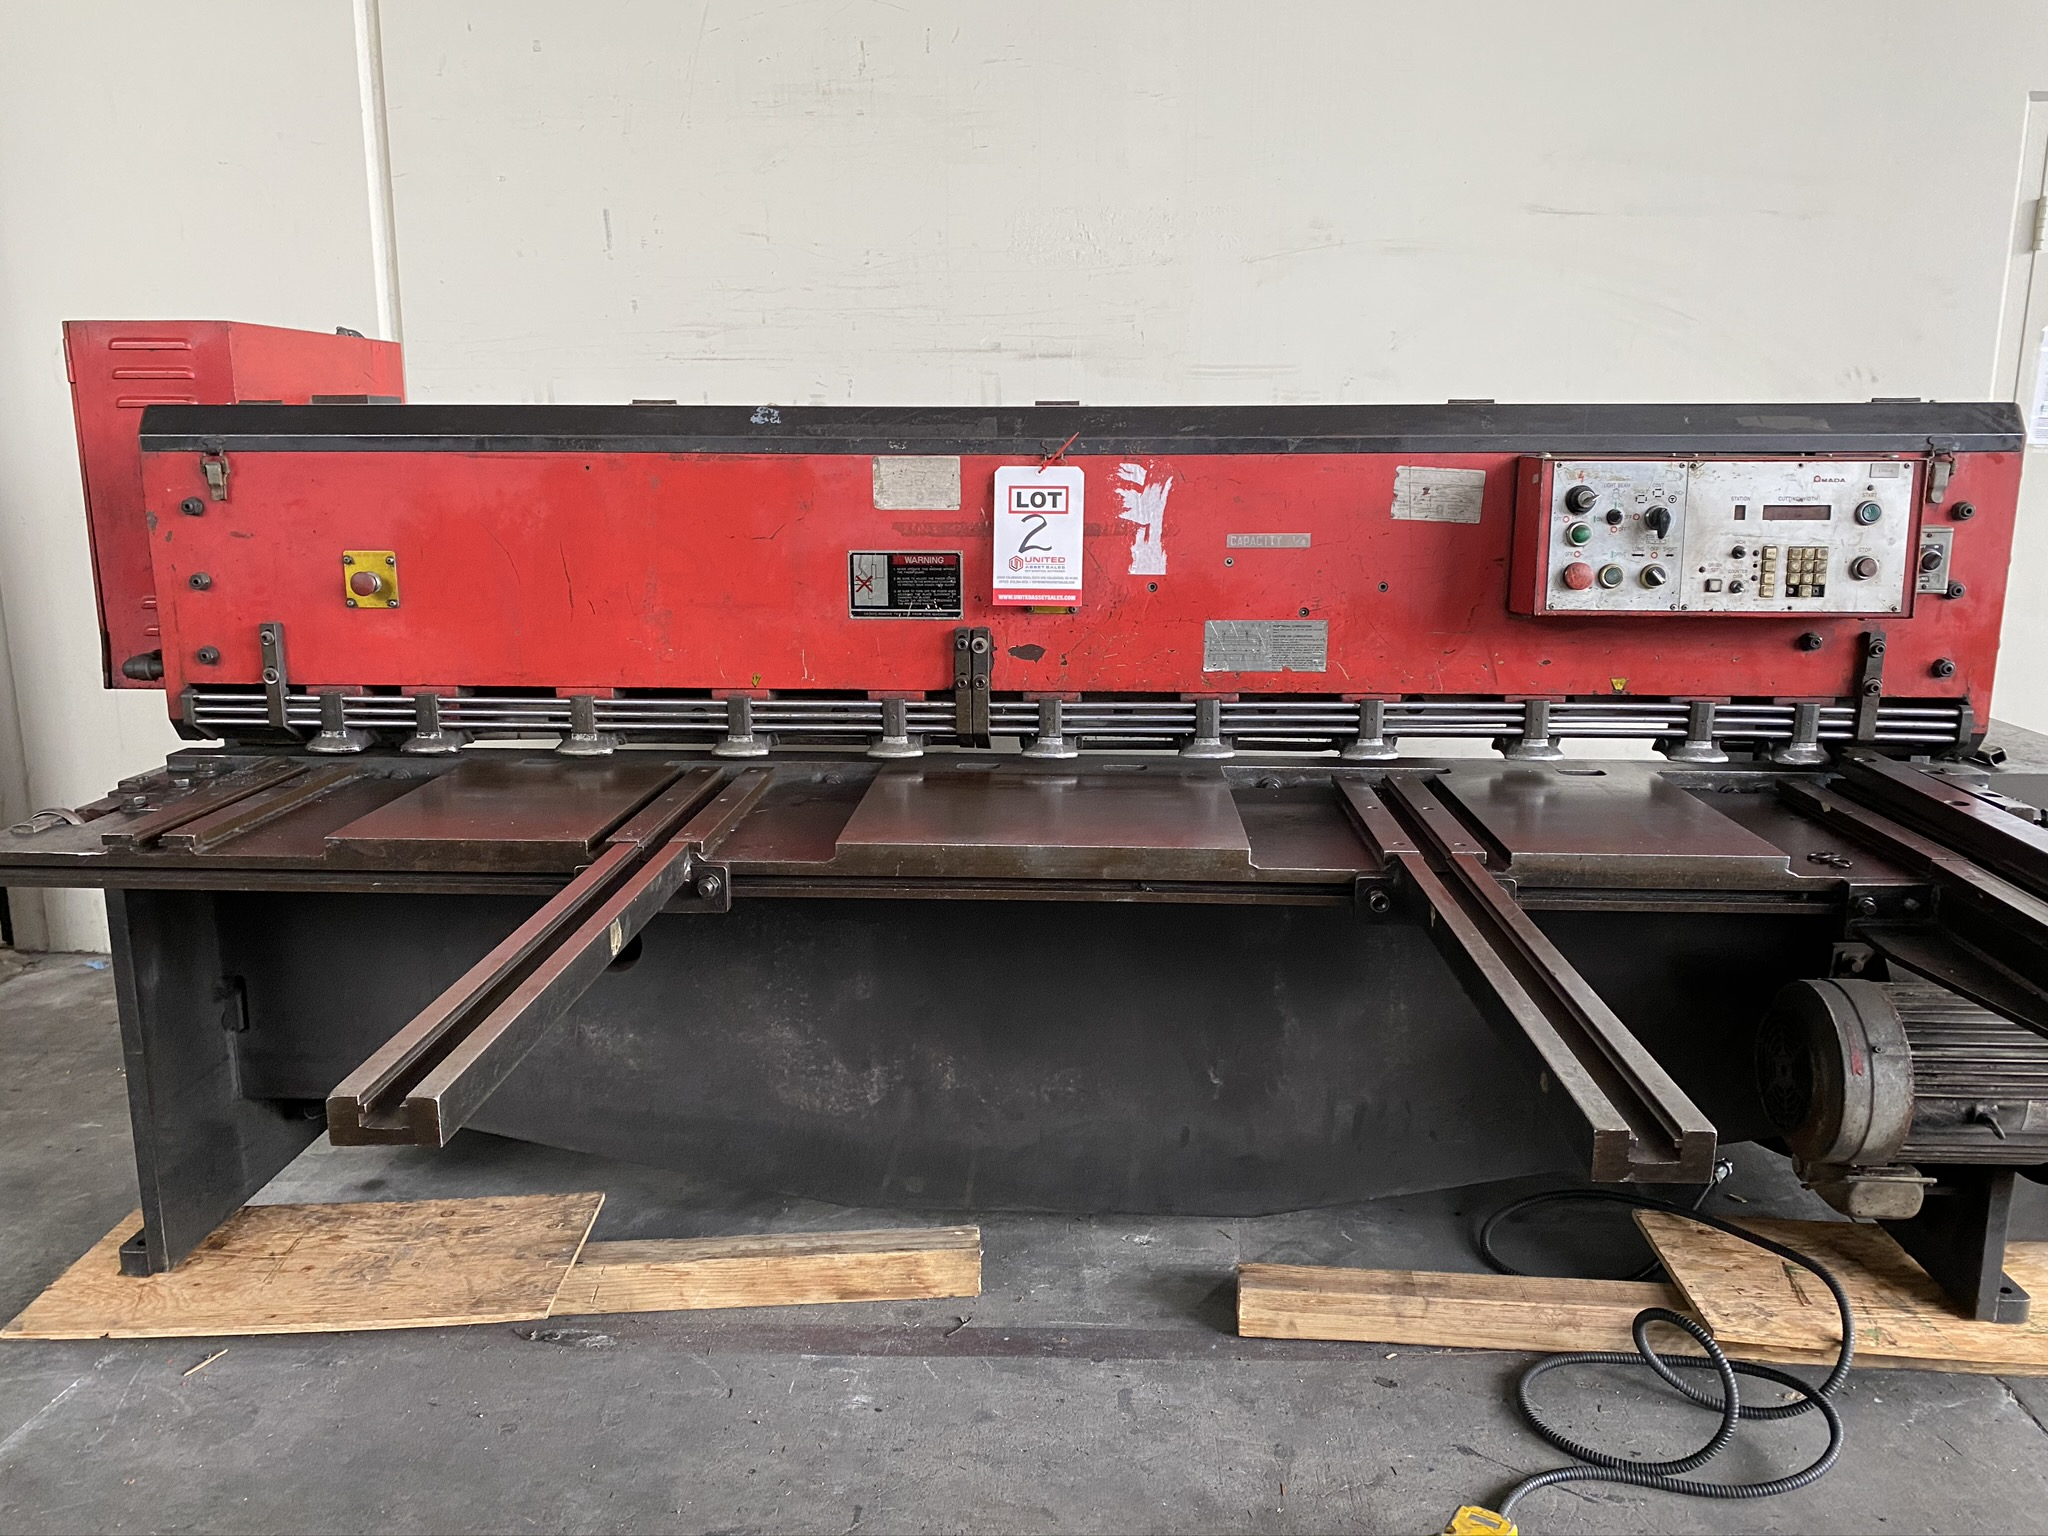 1990 AMADA M-2560 SHEAR, 2500 MM, LENGTH, 6 MM THICKNESS, MECHANICAL, SHEET SUPPORTS - Image 2 of 14